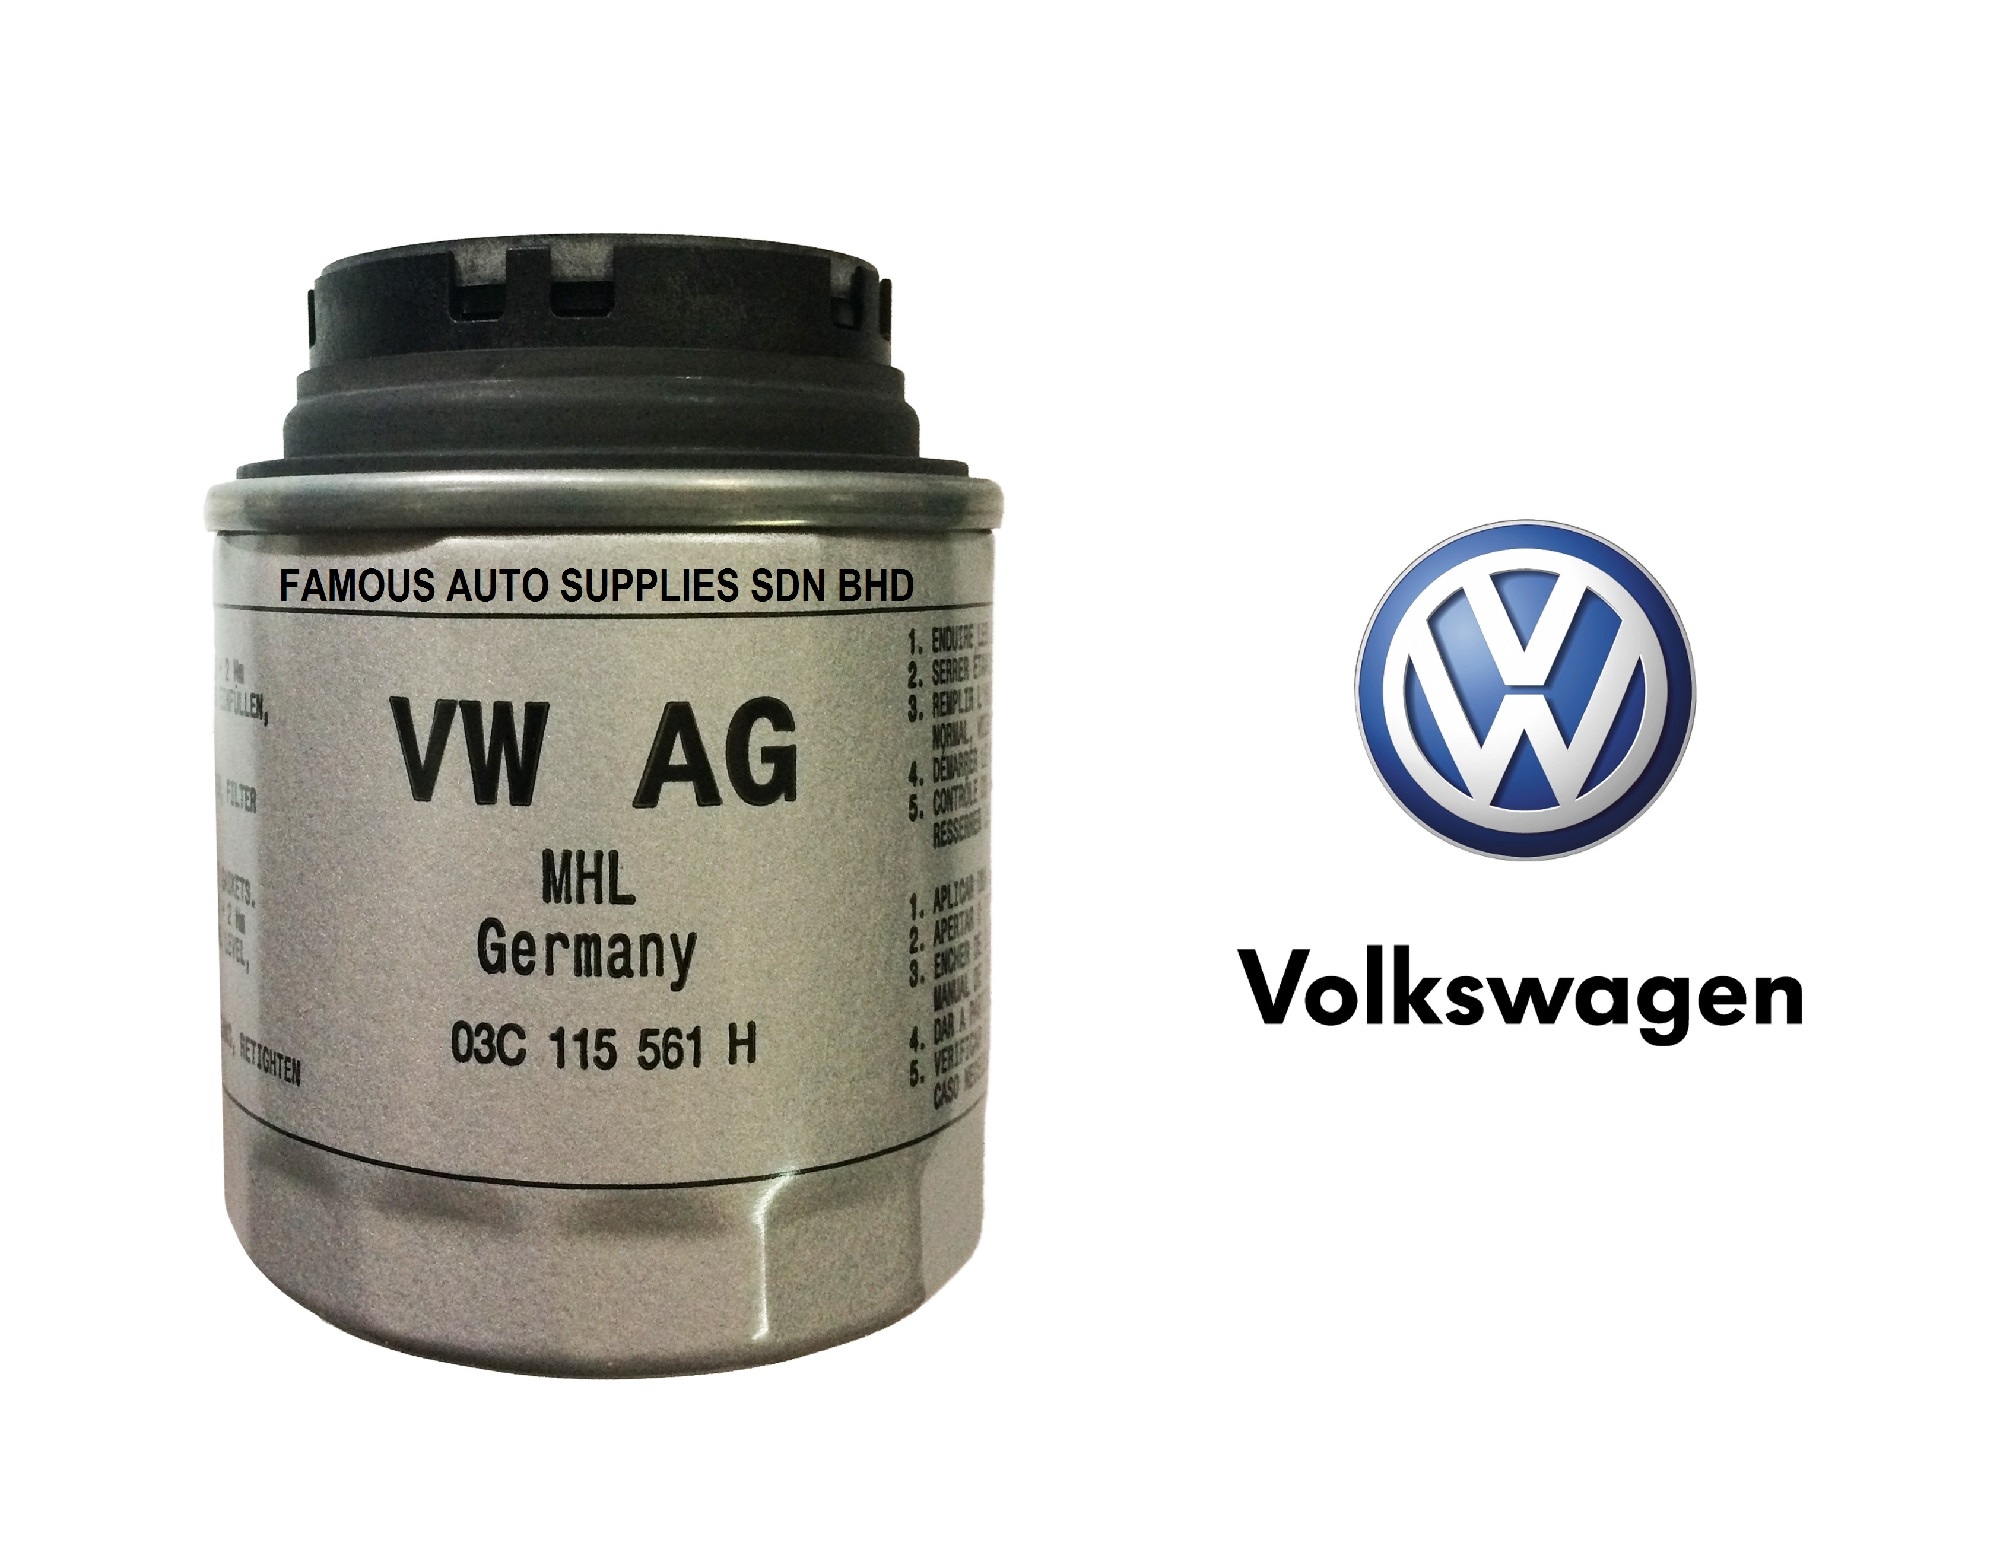 Volkswagen Golf Jetta Beetle Tiguan 1 4 Tsi Oil Filter 03c